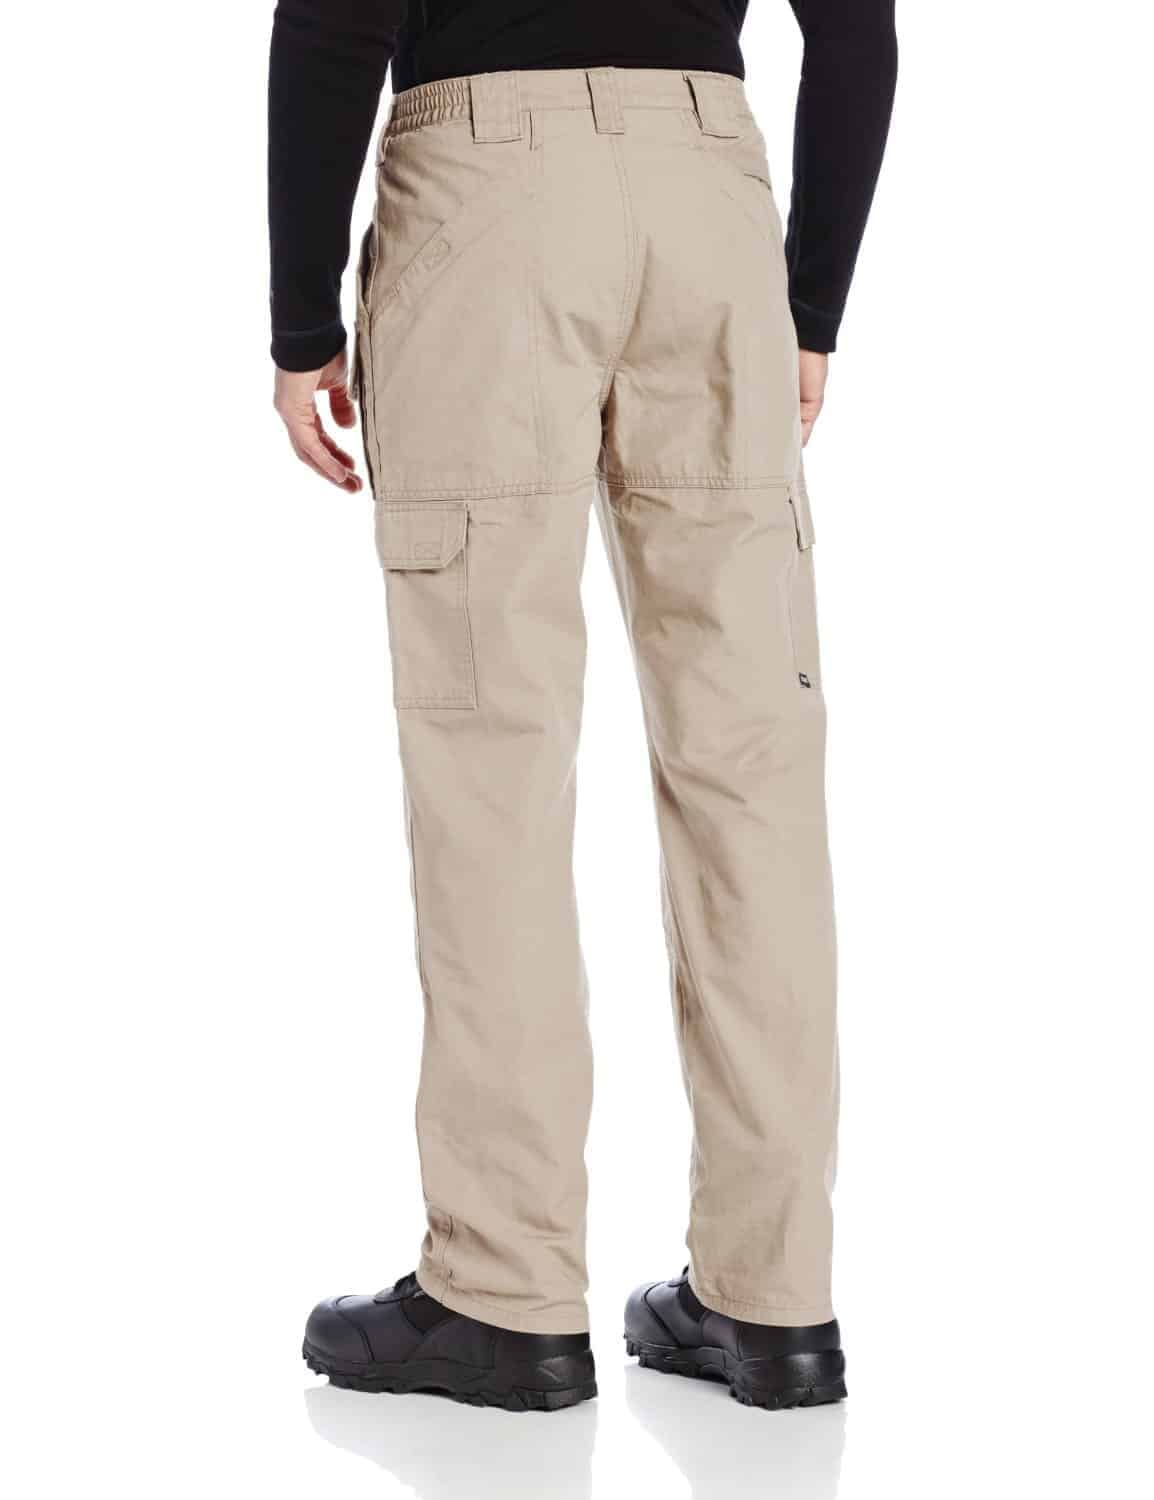 Tactical Pants Doomsday Prep